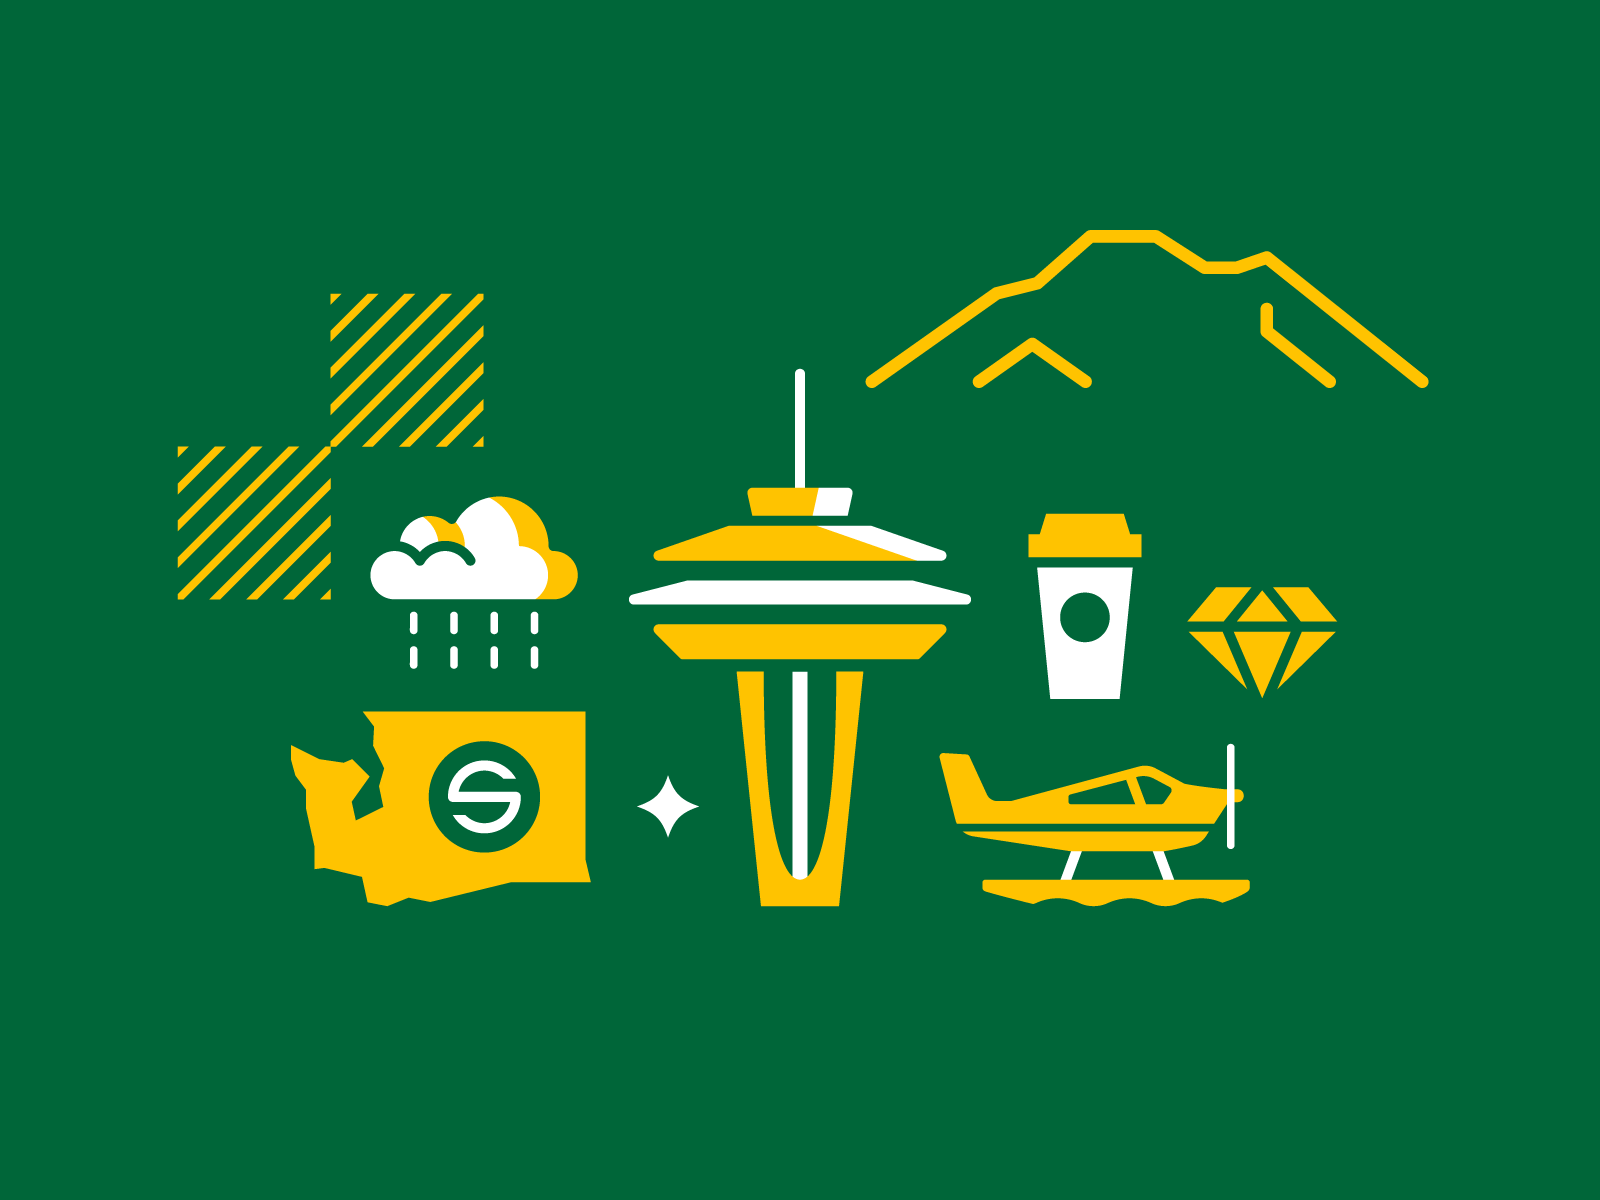 Seattle basketball